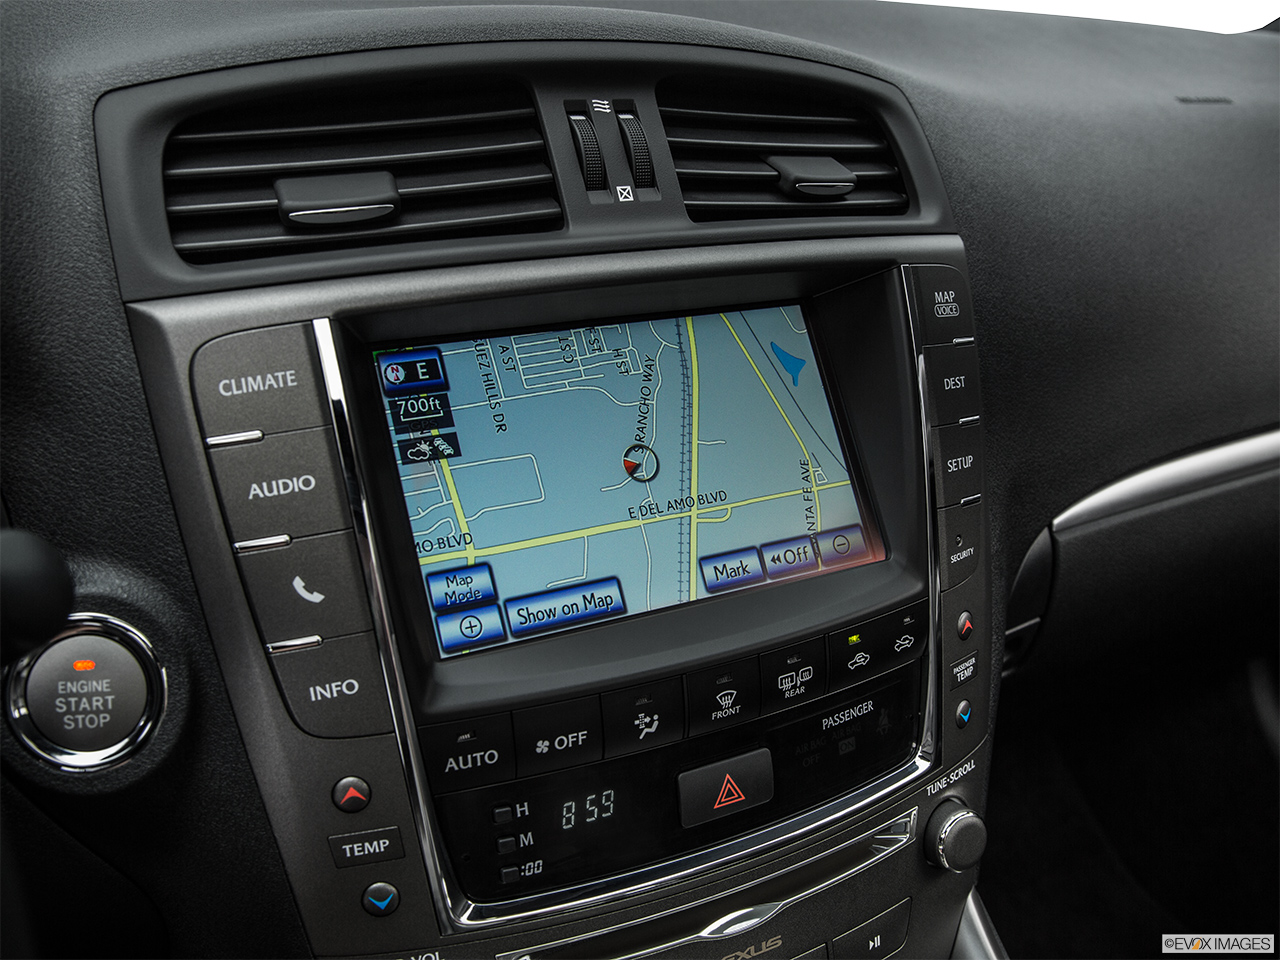 2015 Lexus IS C IS250 RWD Driver position view of navigation system.